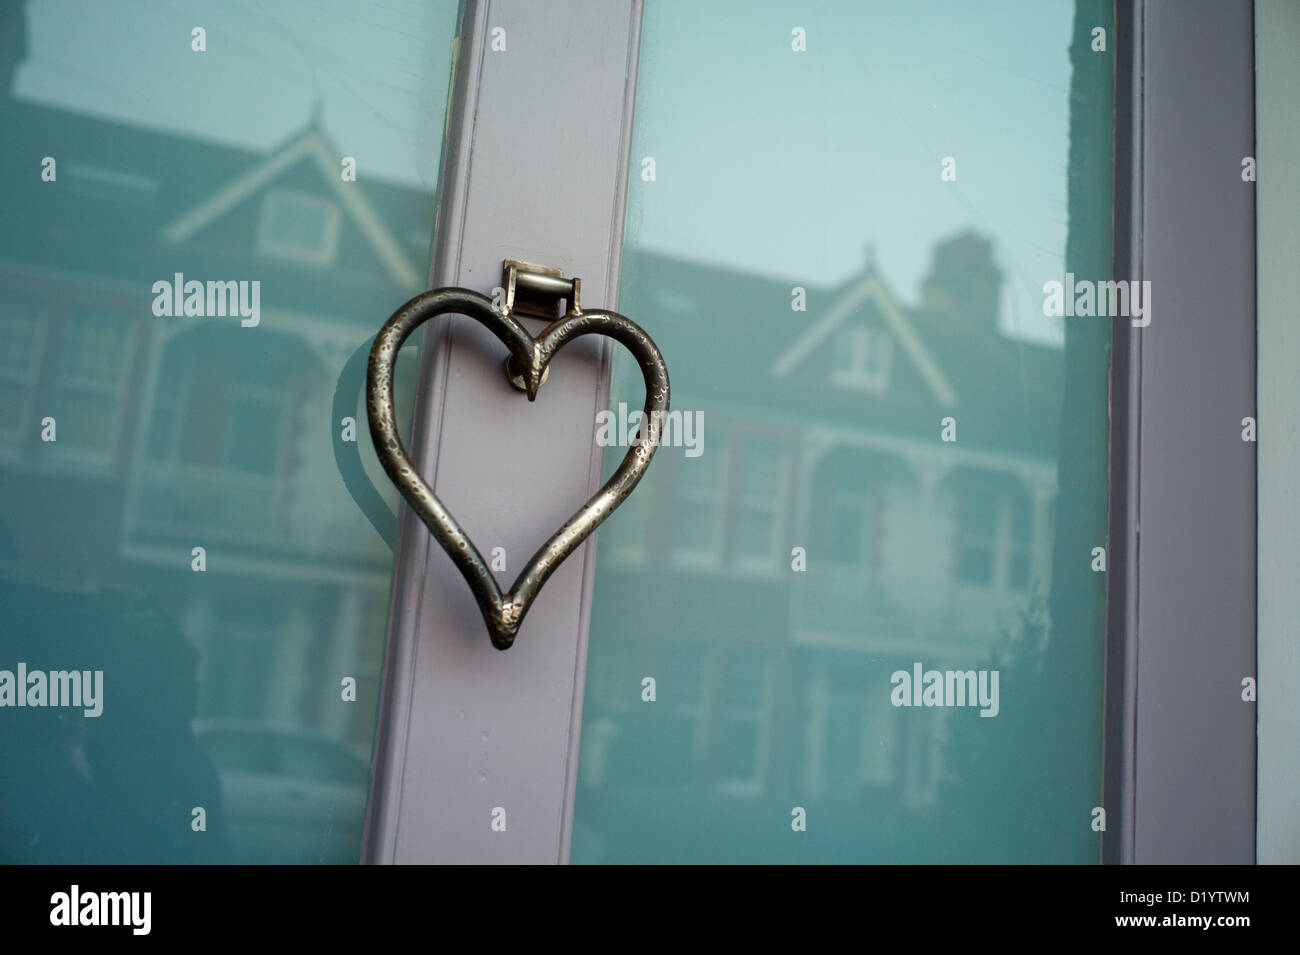 Heart shaped door knocker glass door reflections & Heart shaped door knocker glass door reflections Stock Photo ... pezcame.com